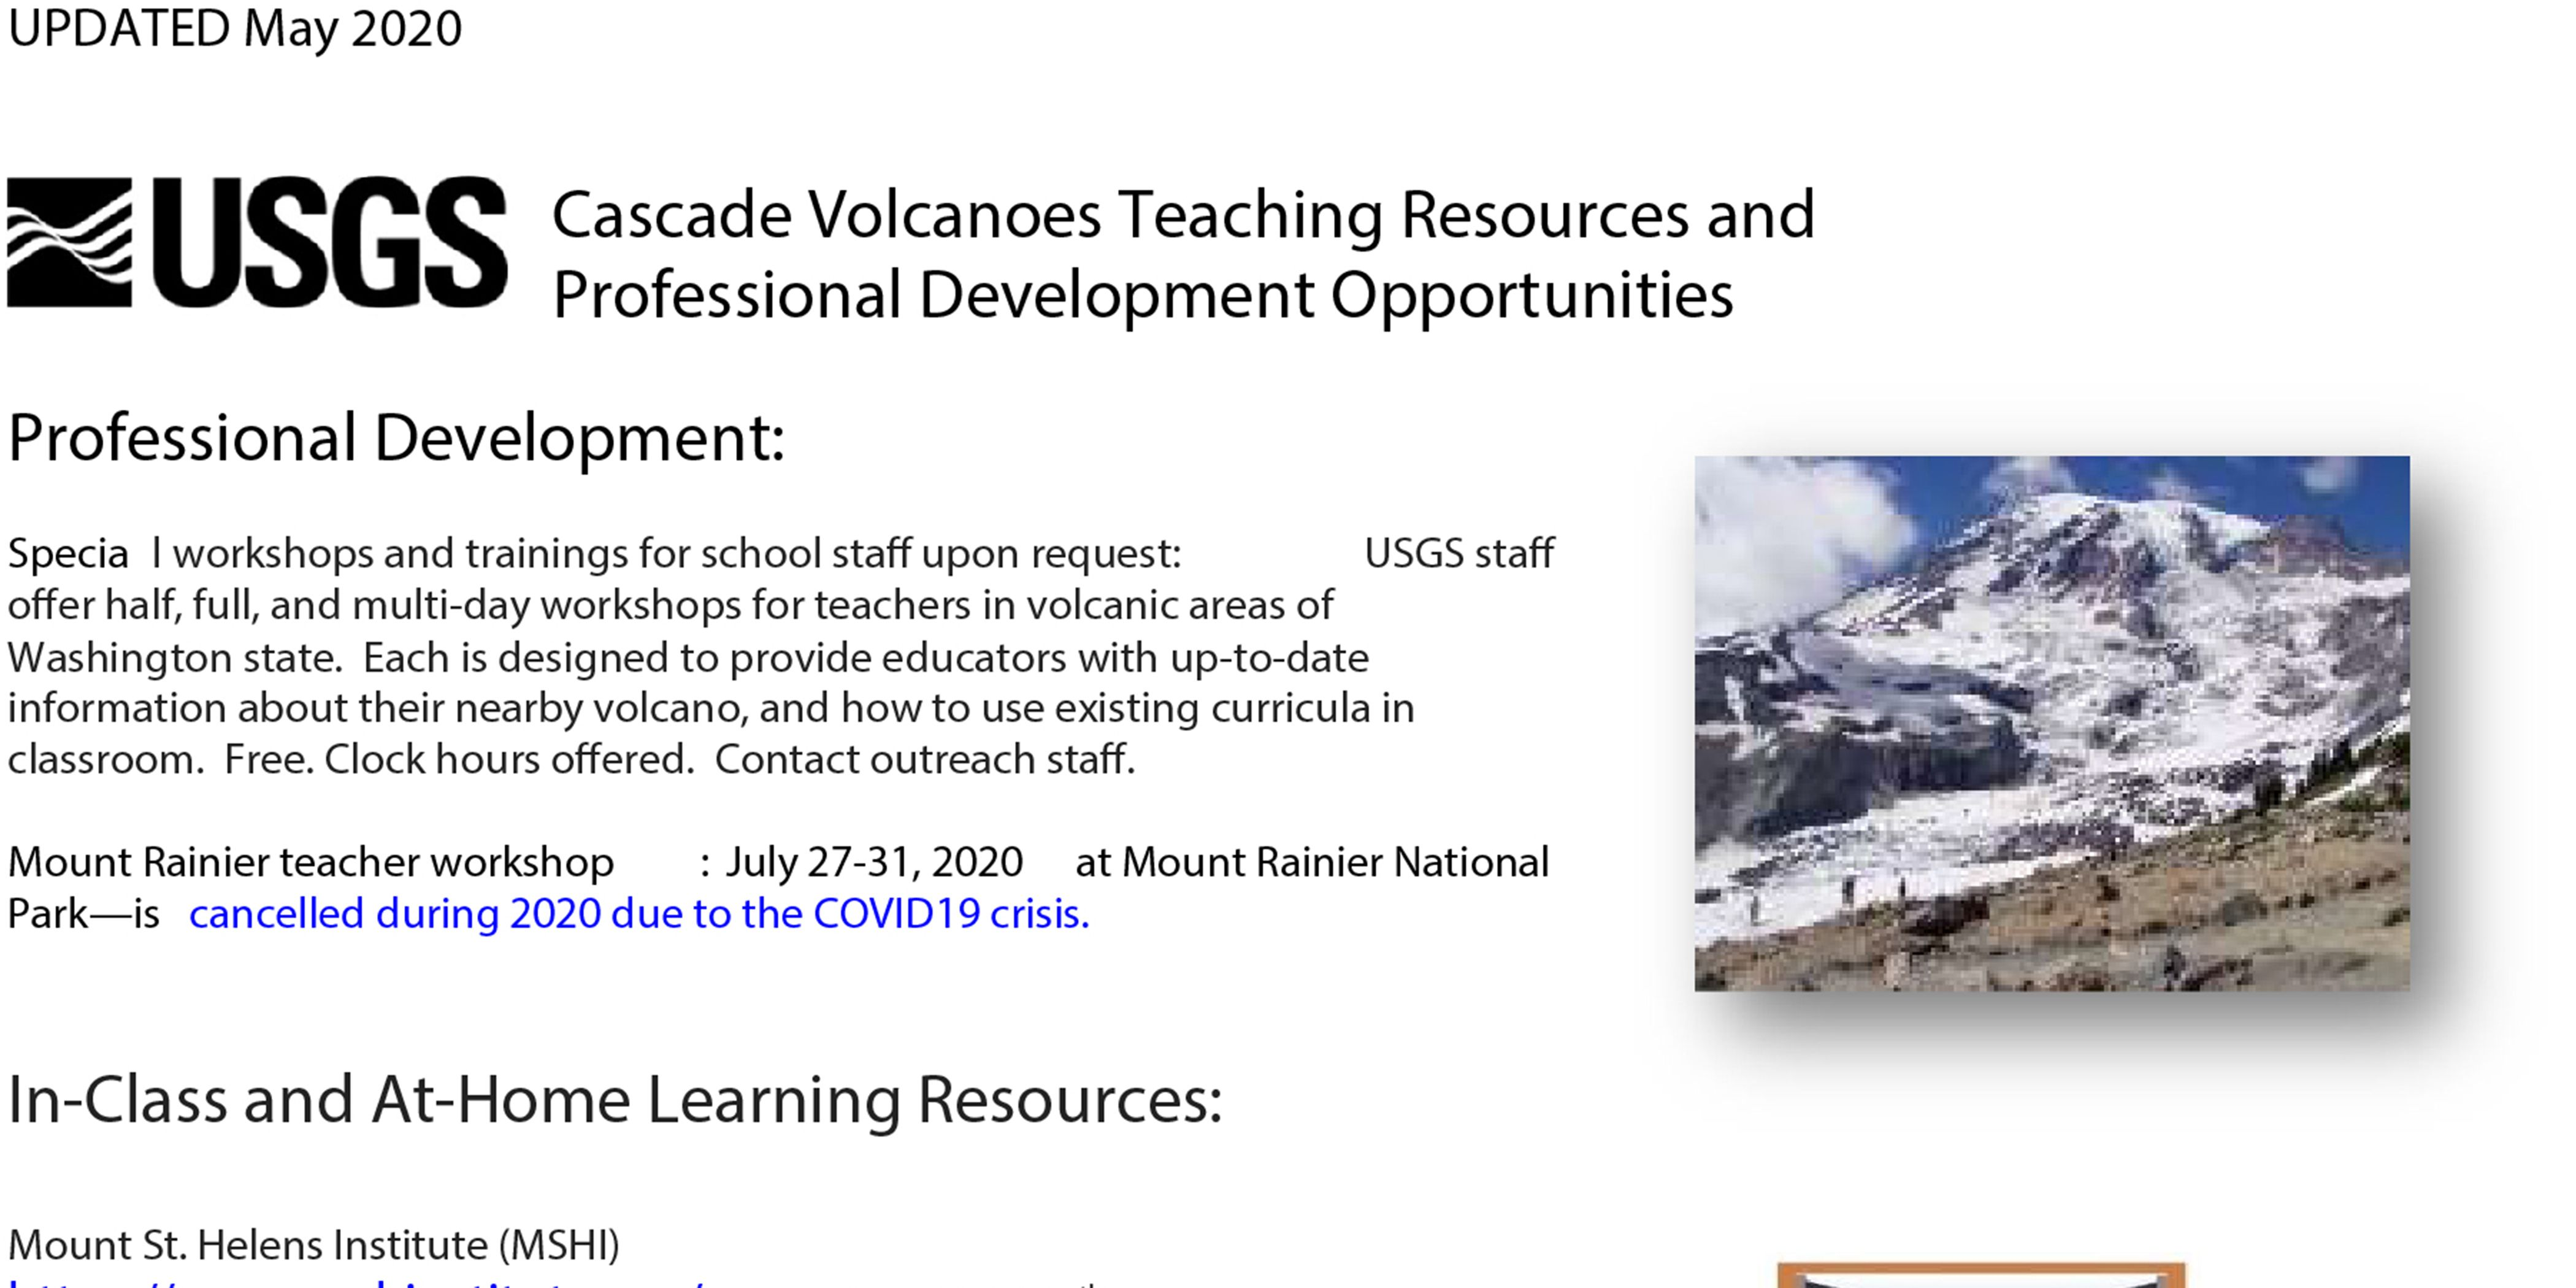 USGS Cascade Volcanoes Teaching Resources and Professional Development Opportunities